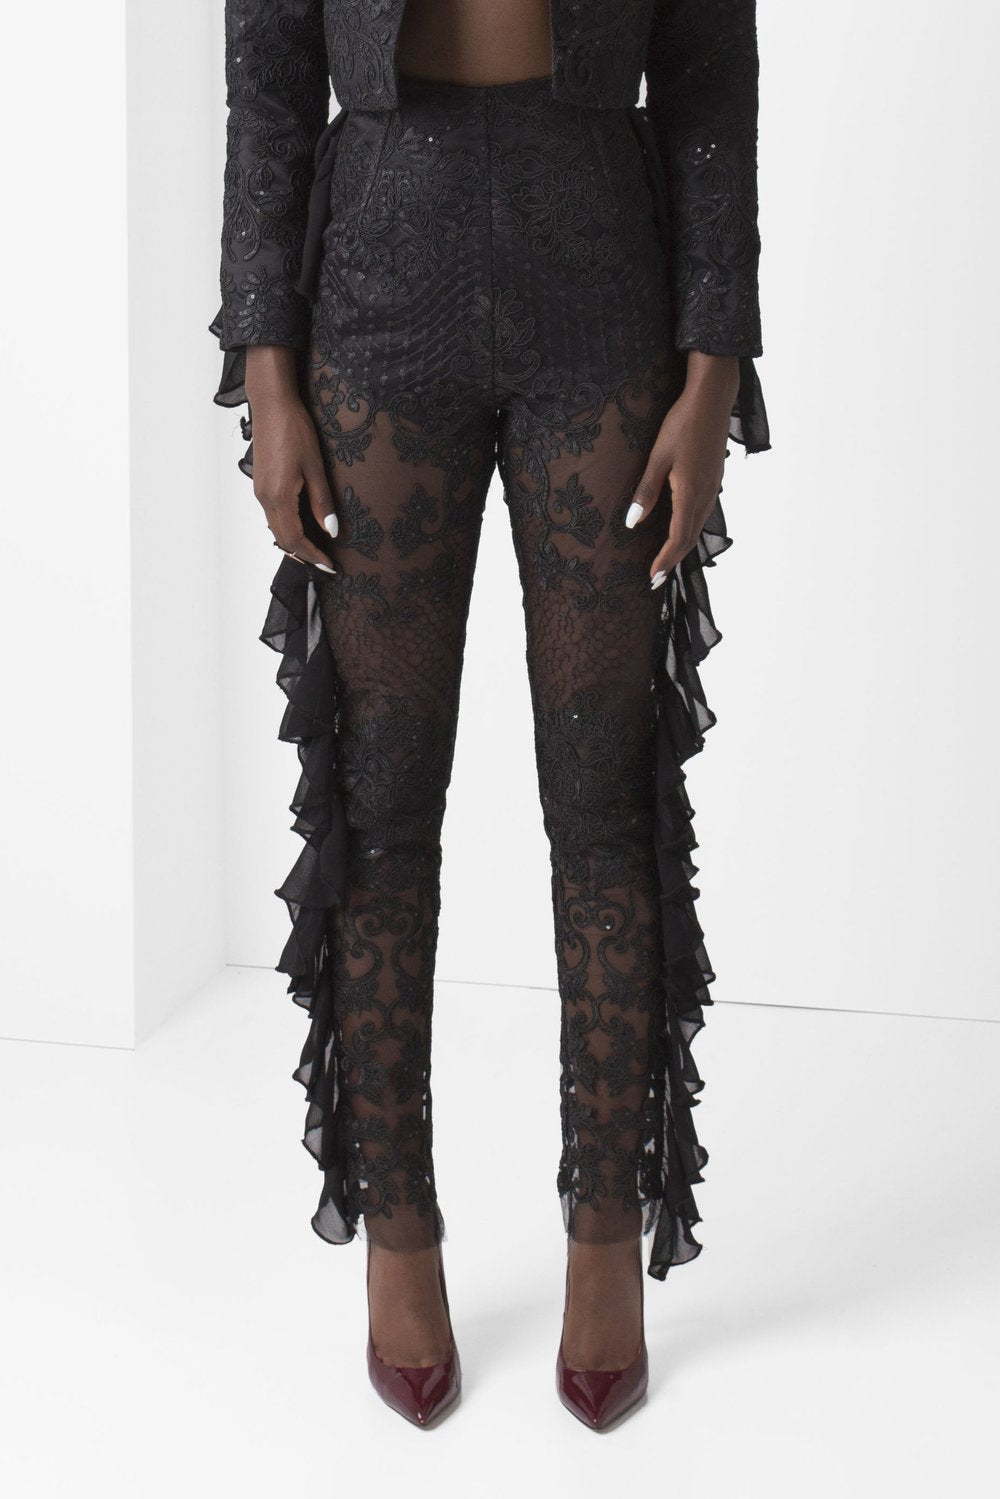 Black Unlined Embroidered Lace Pants with Chiffon Ruffle Detail - pacorogiene